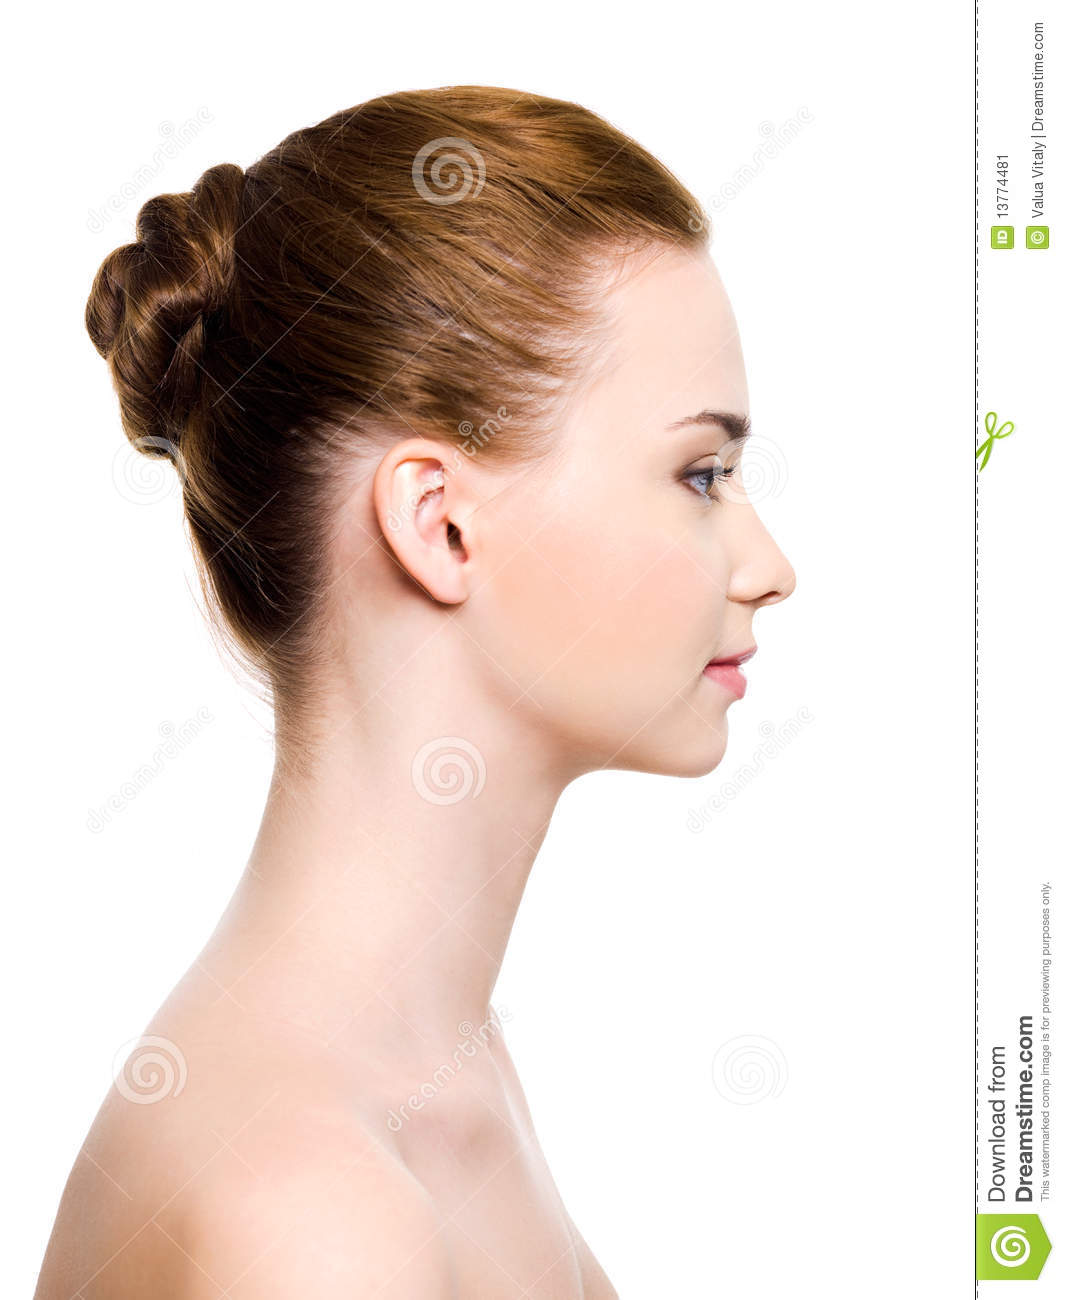 Profile portrait of an young woman face